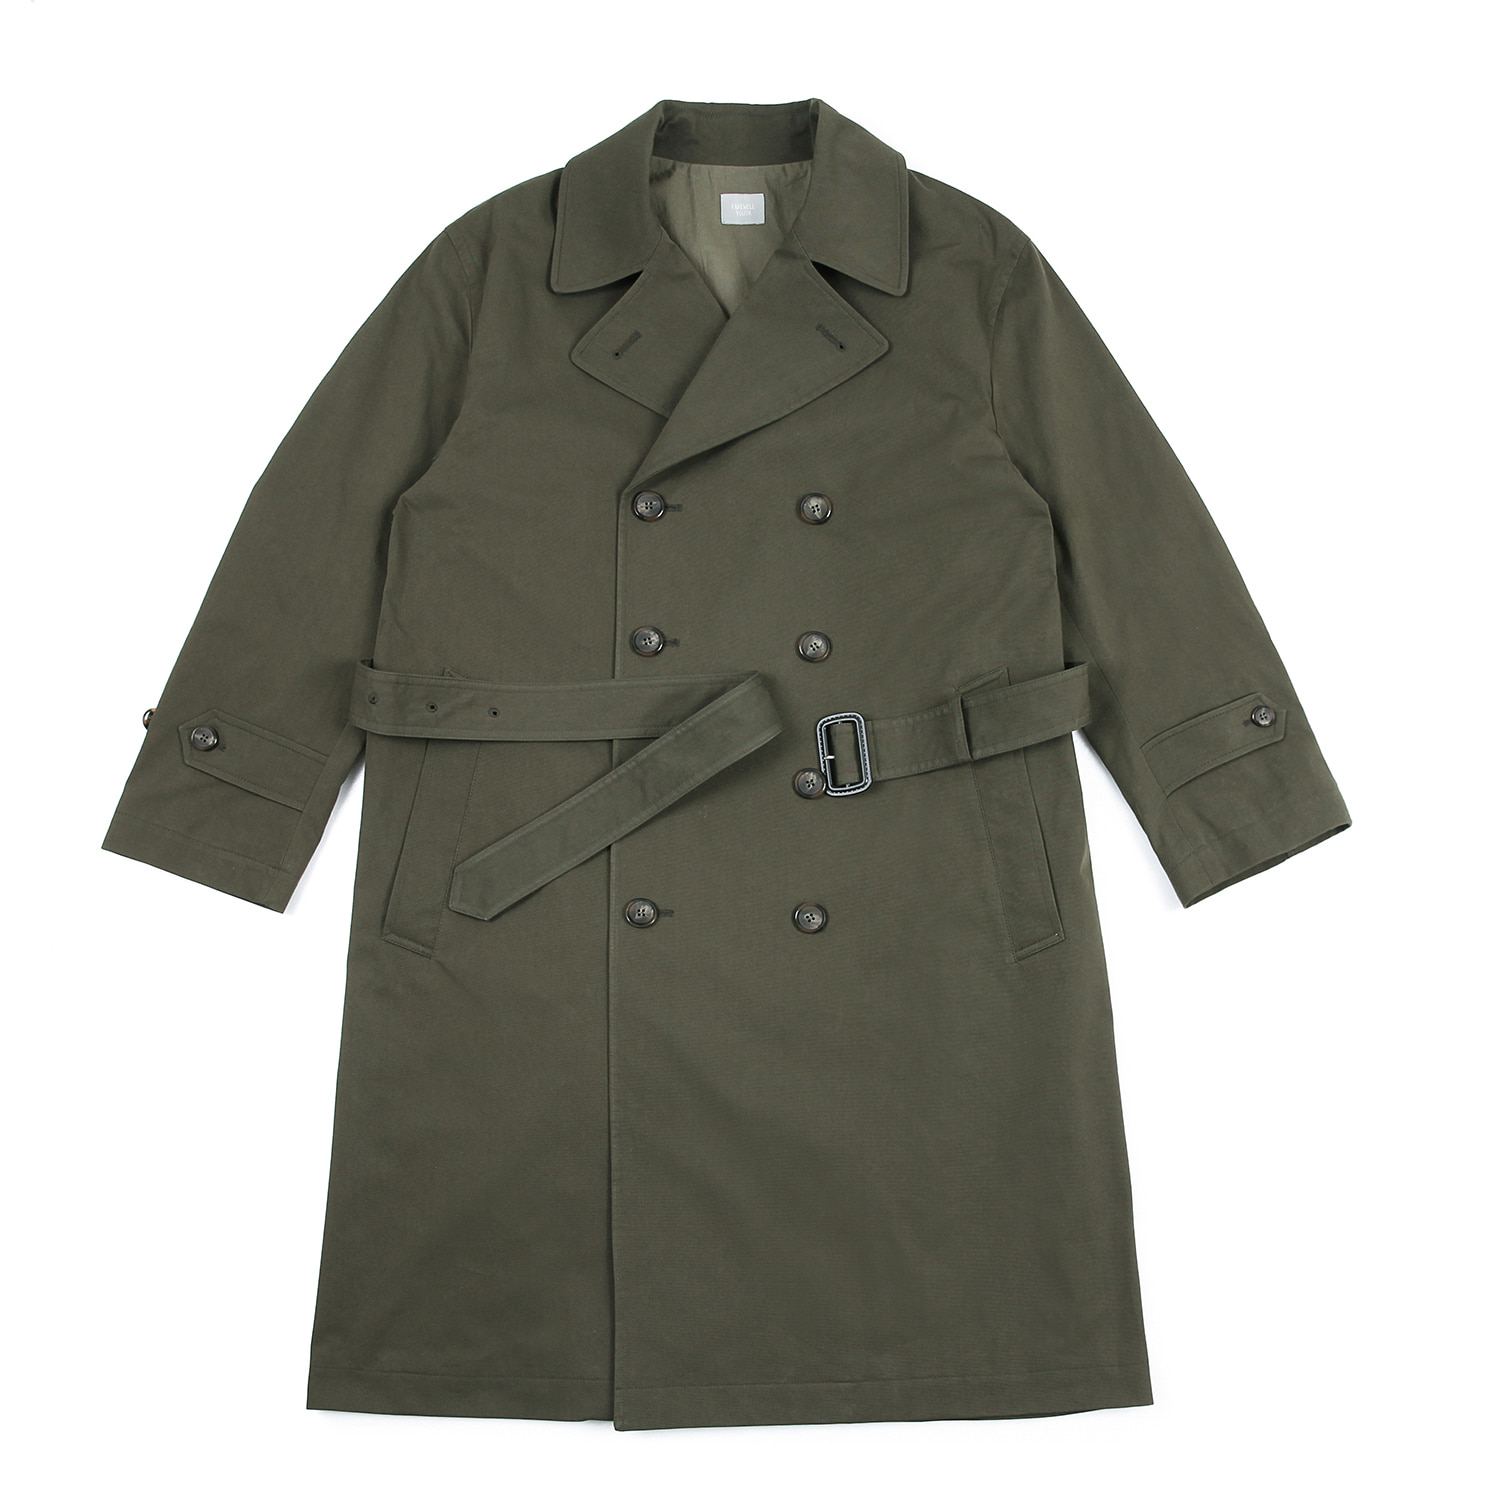 25%OFF_Farewell Youth Trench Coat (Deep Forest)